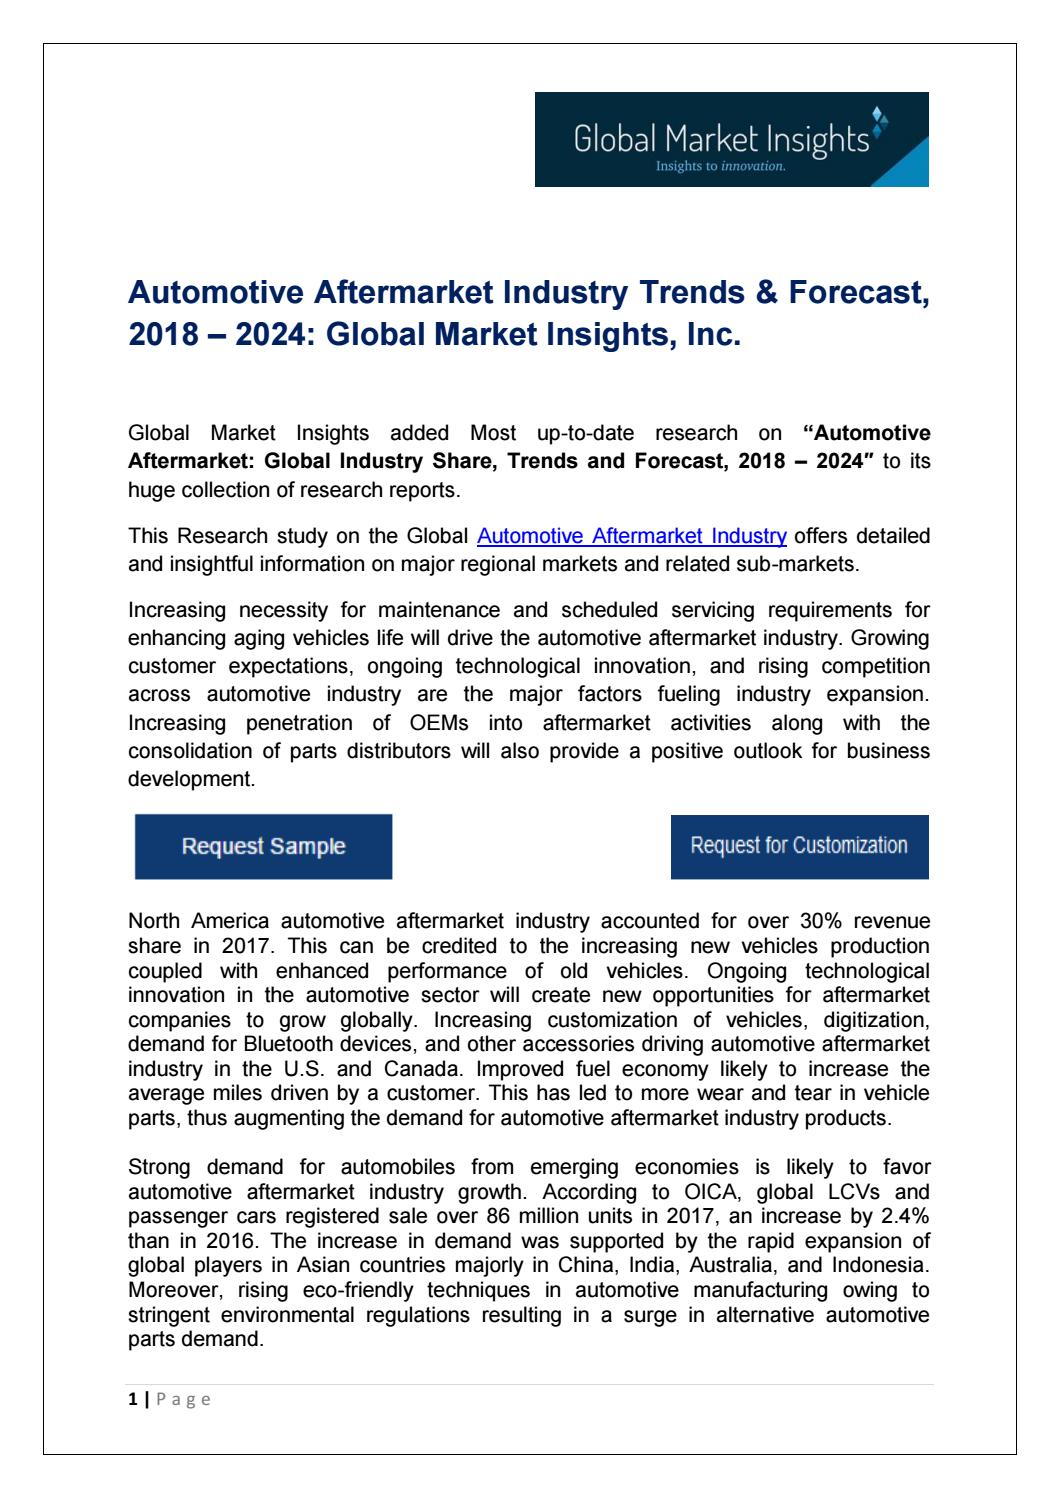 Automotive Aftermarket Industry Trends & Forecast, 2018